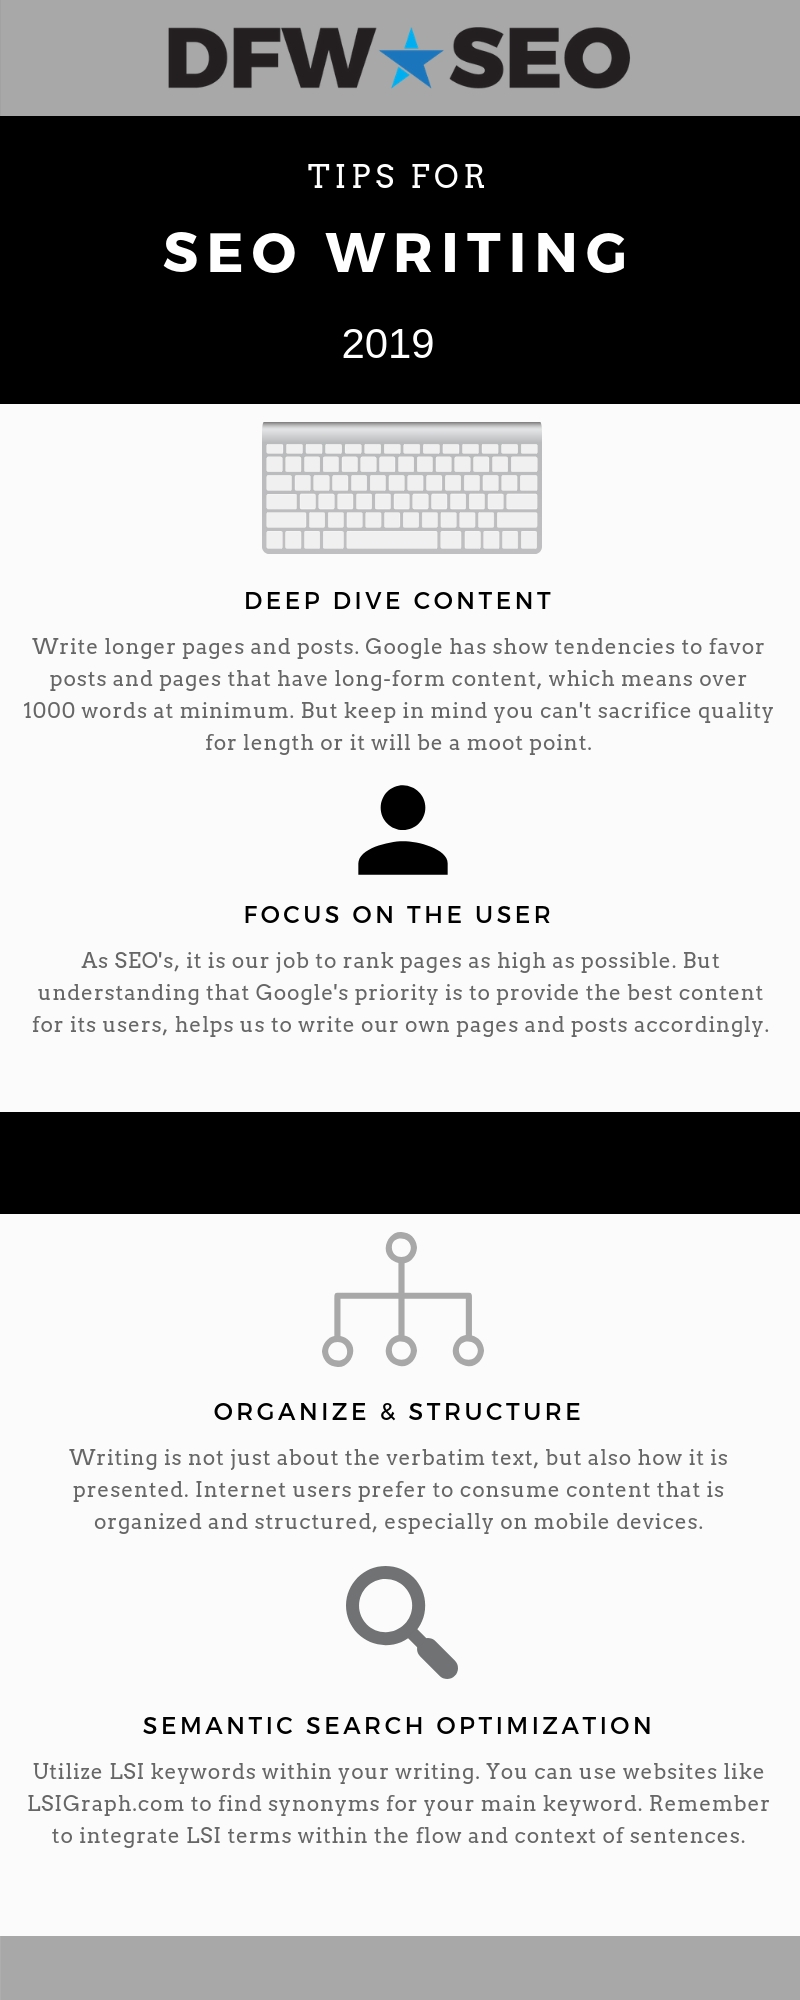 SEO Writing Tips 2019 Infographic